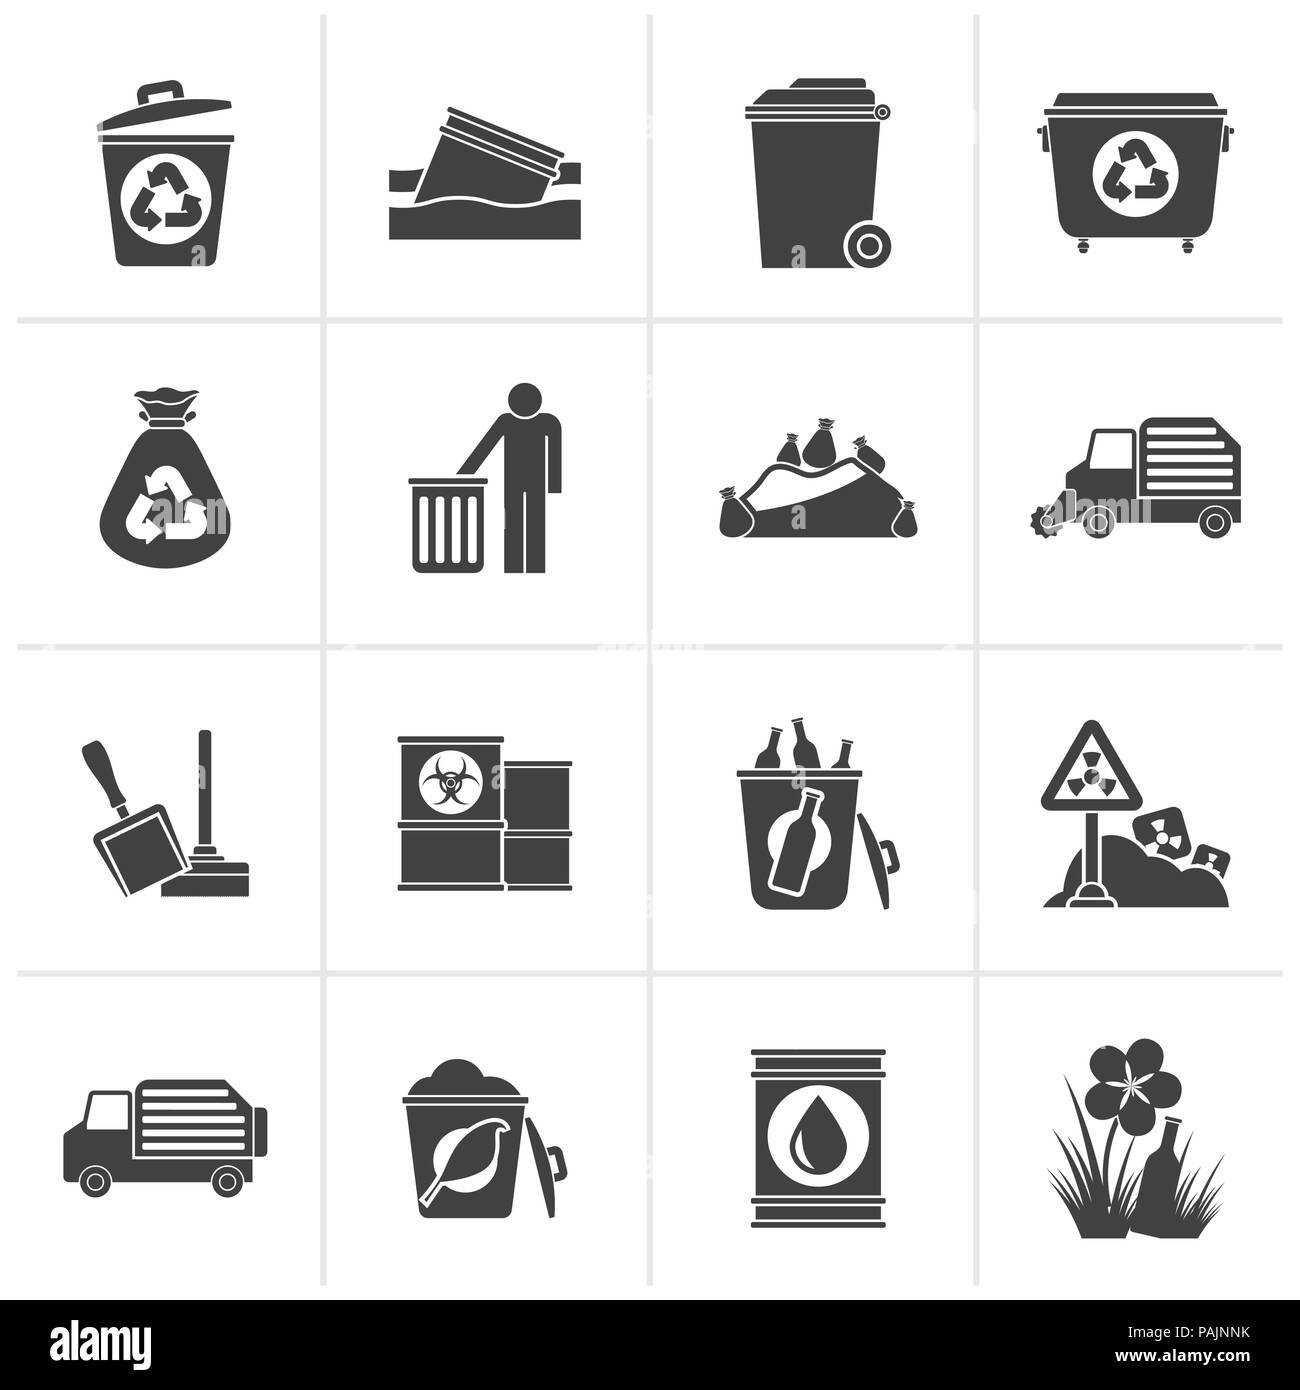 Black Garbage and rubbish icons - vector icon set - Stock Vector